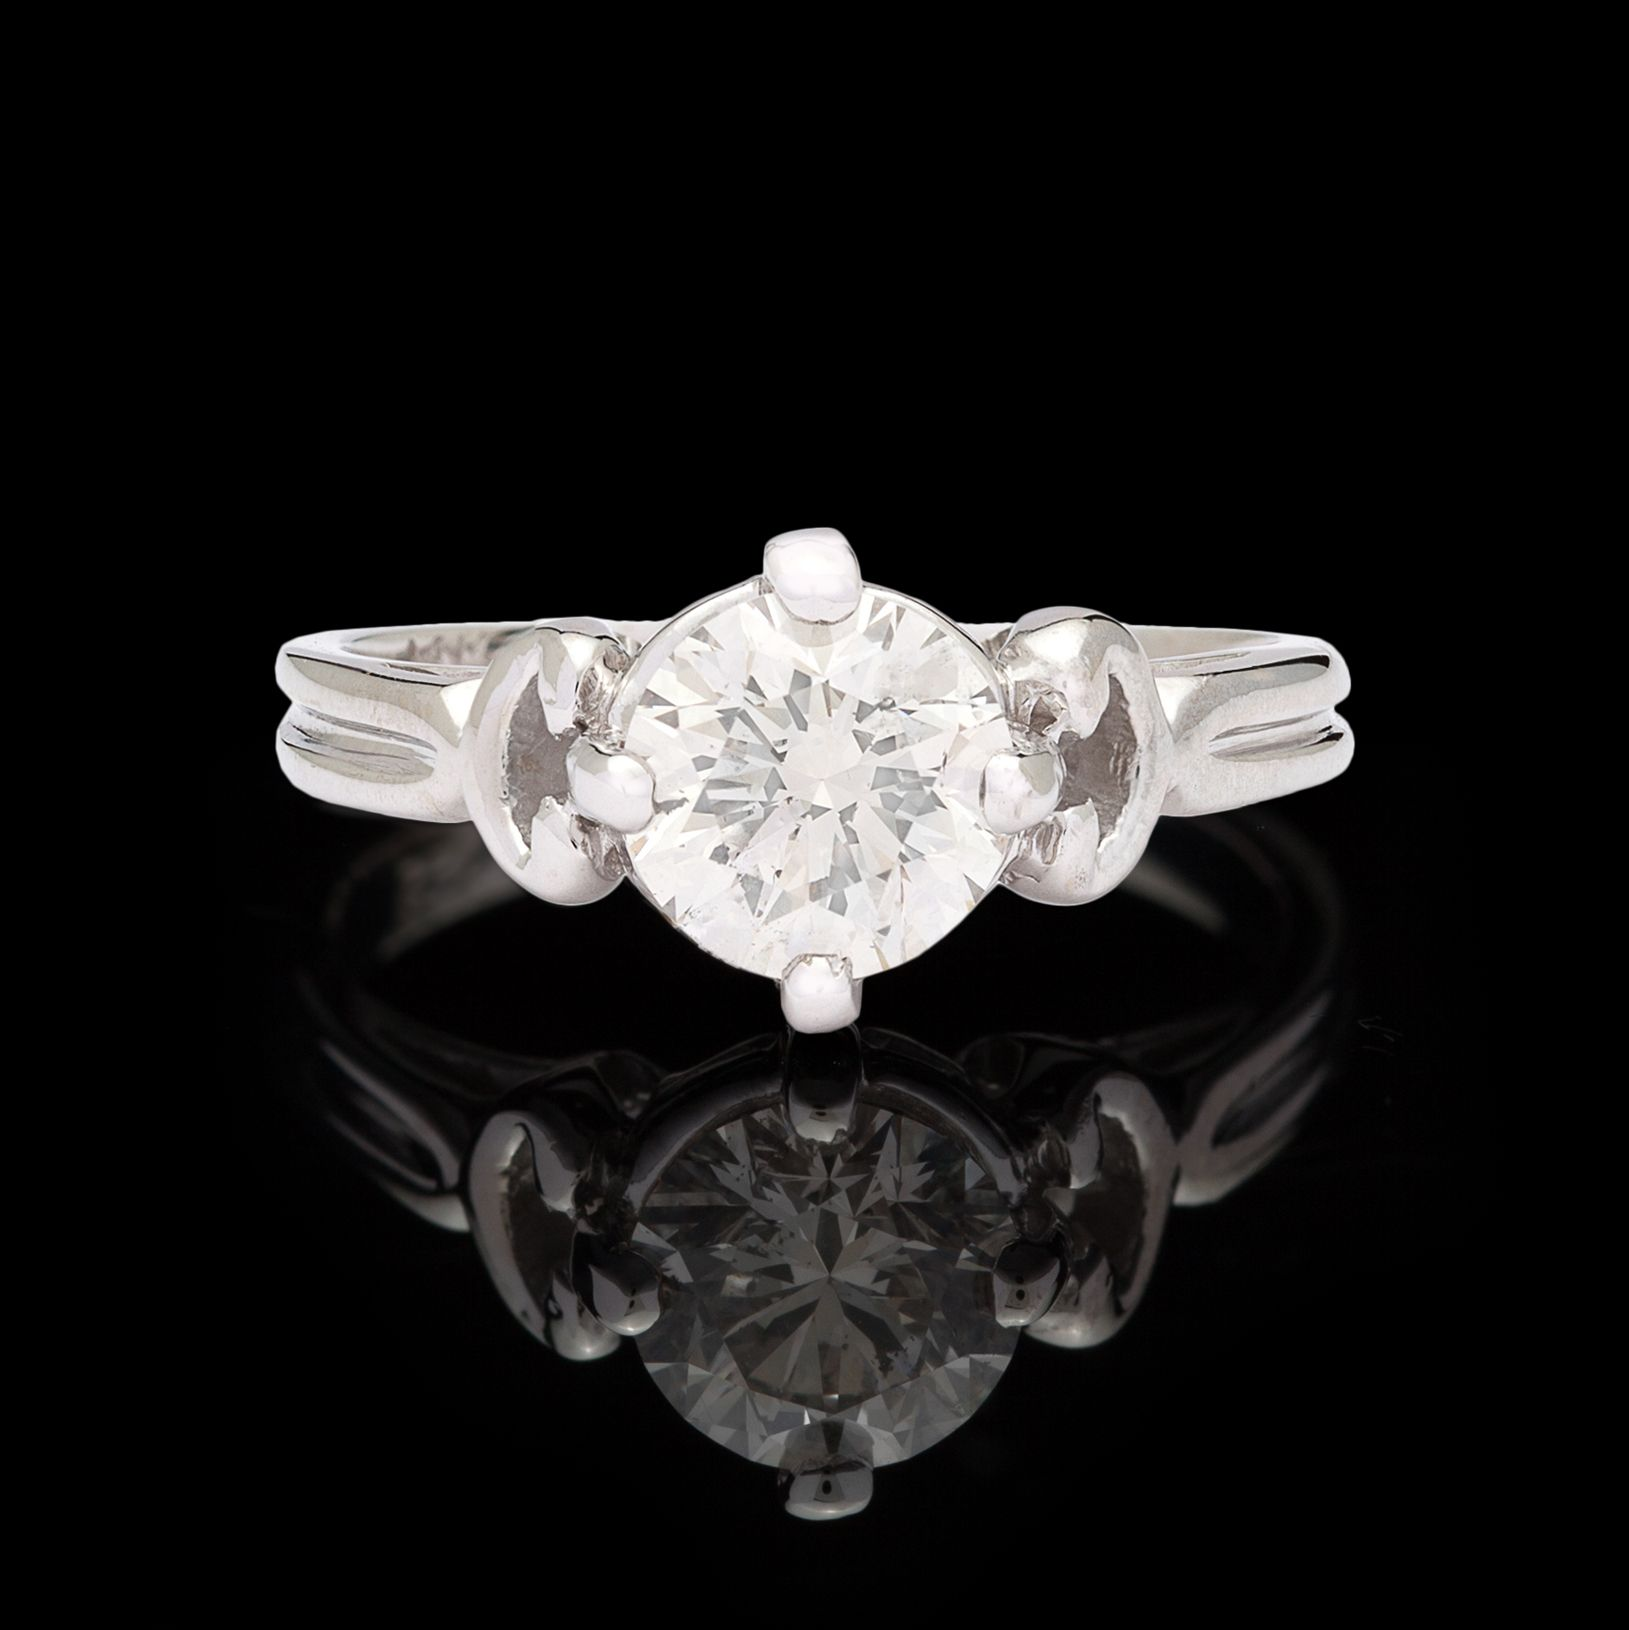 Unique 14Kt White Gold Solitaire Engagement Ring Features a 1.09 Carat I SI Quality Round Brilliant Cut Diamond.  The ring is currently a 5.0 and can be resized up or down.  This piece totals 3.6 grams.